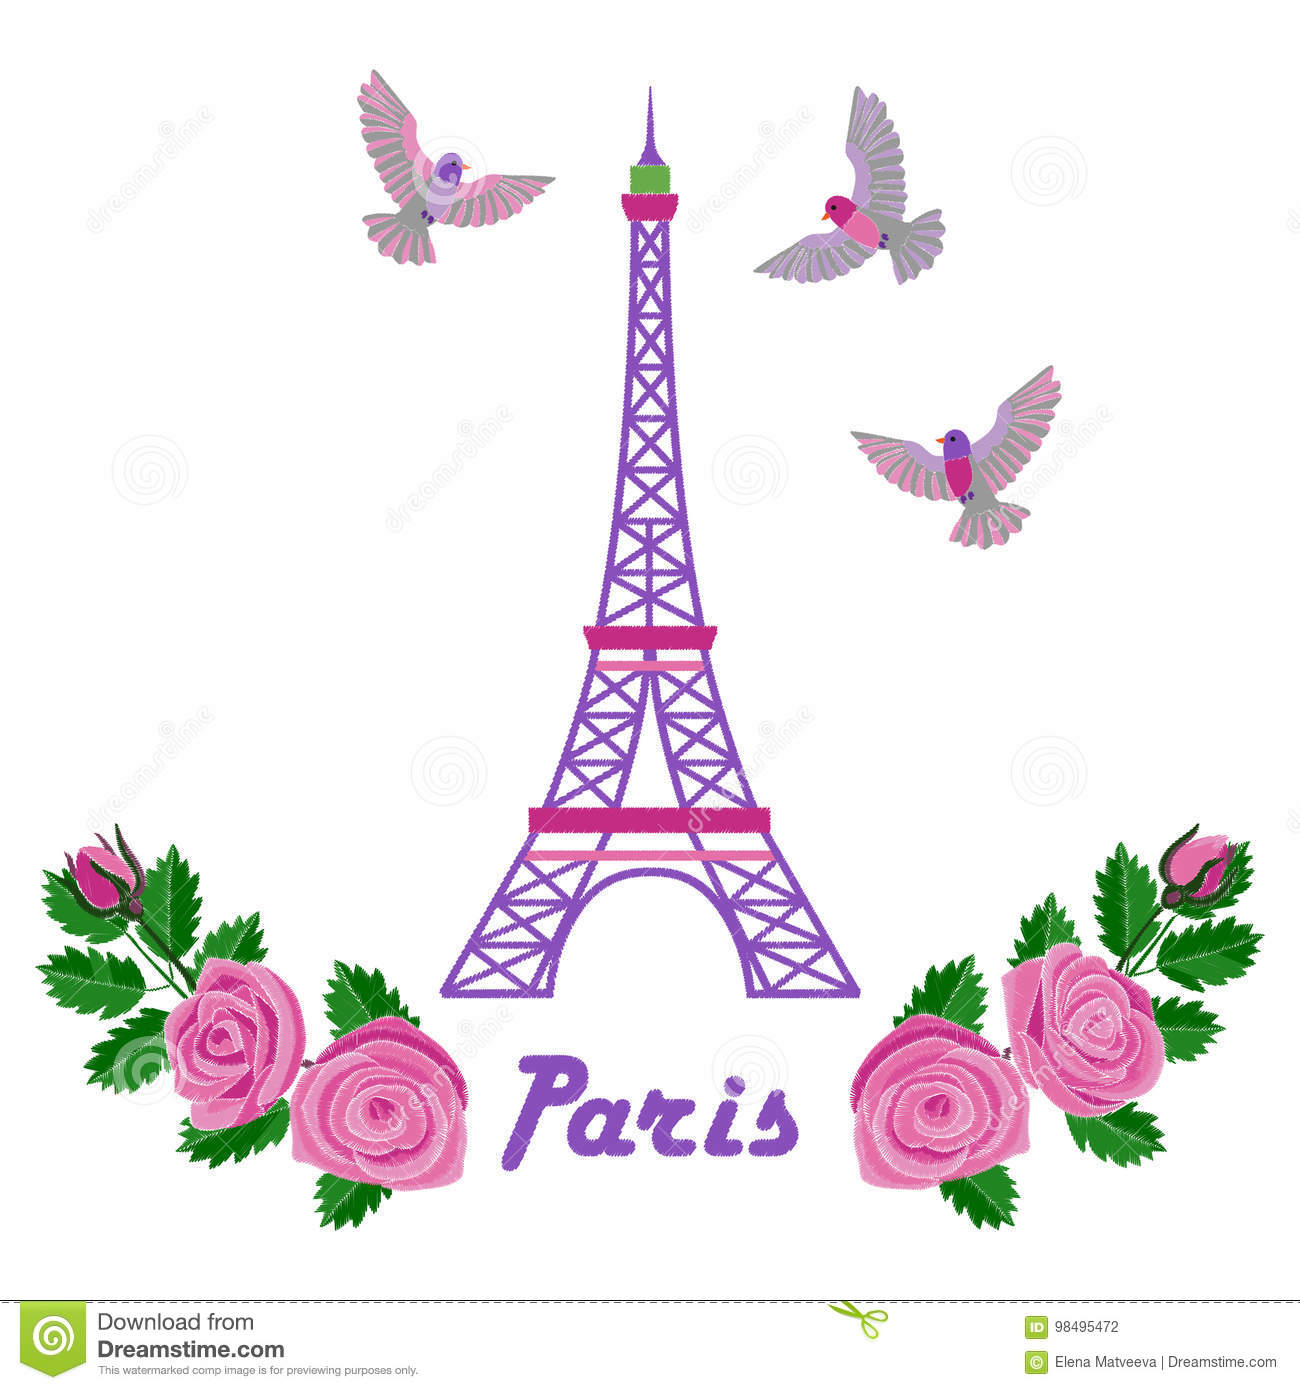 Paris Embroidery Pattern Stock Vector Illustration Of Tower 98495472